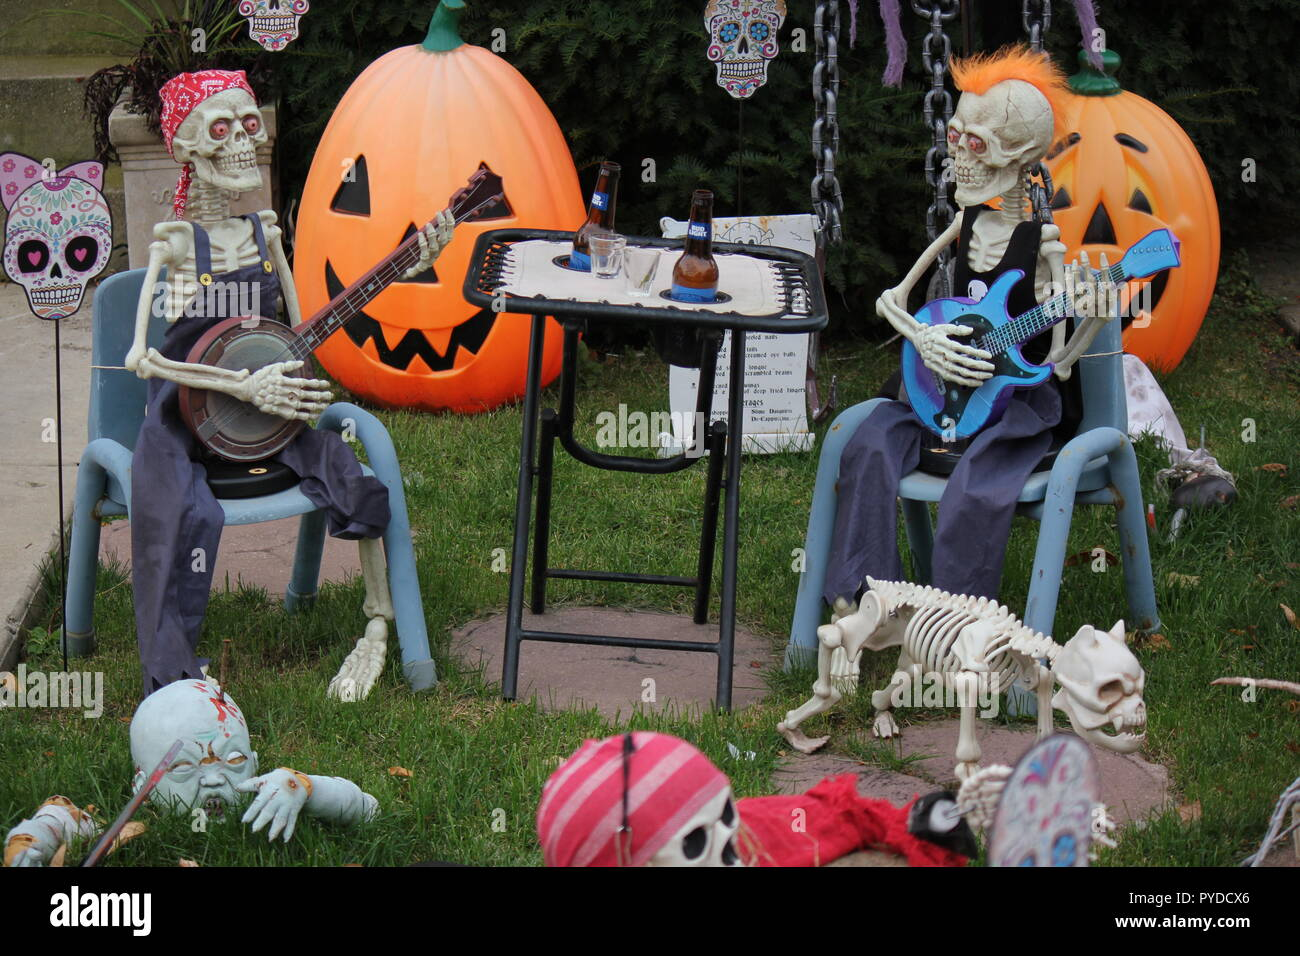 Two musician skeletons, one playing the banjo and the other playing a guitar, sitting on the front lawn, jamming out a tune as creative Halloween lawn decorations. - Stock Image